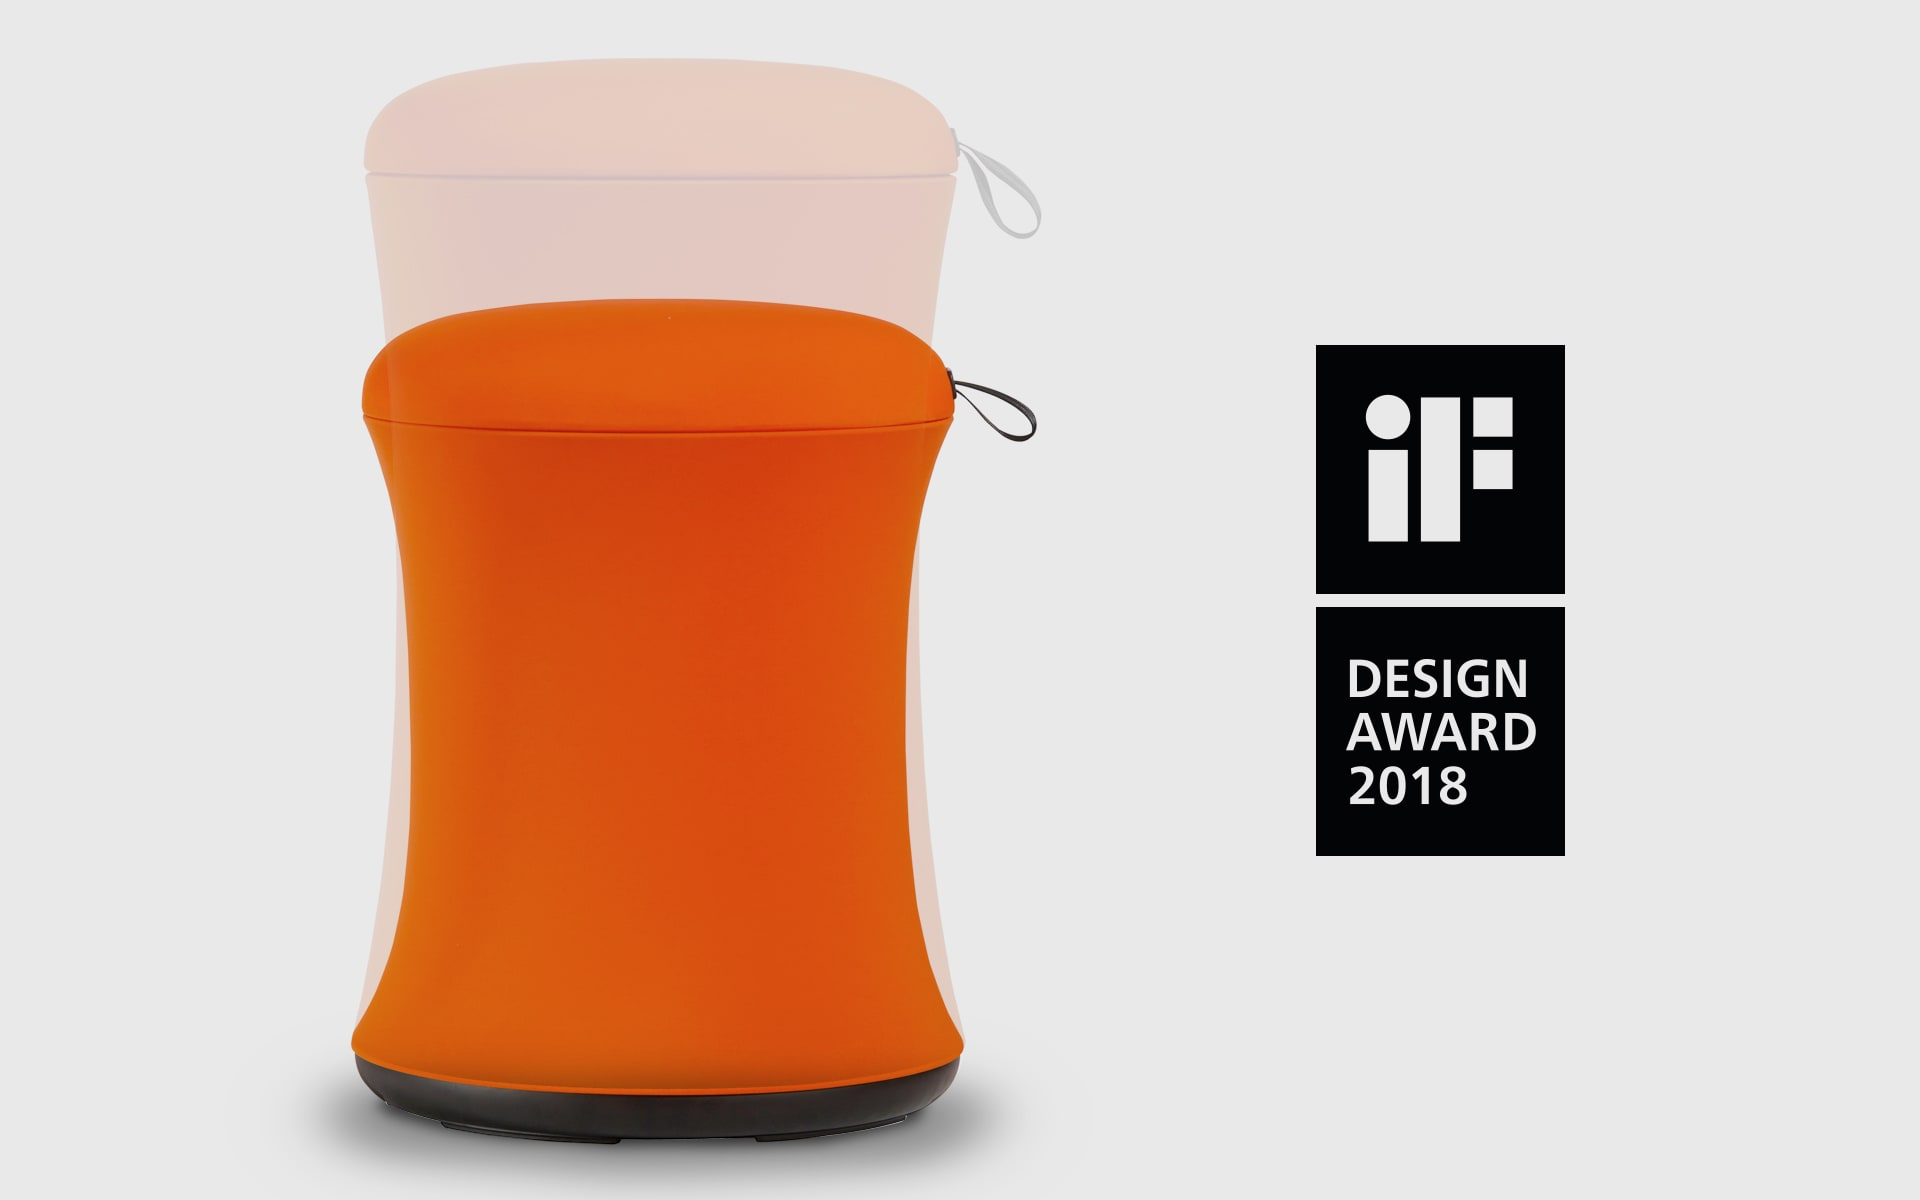 UE Furniture Uebobo Hocker von ITO Design in Orange